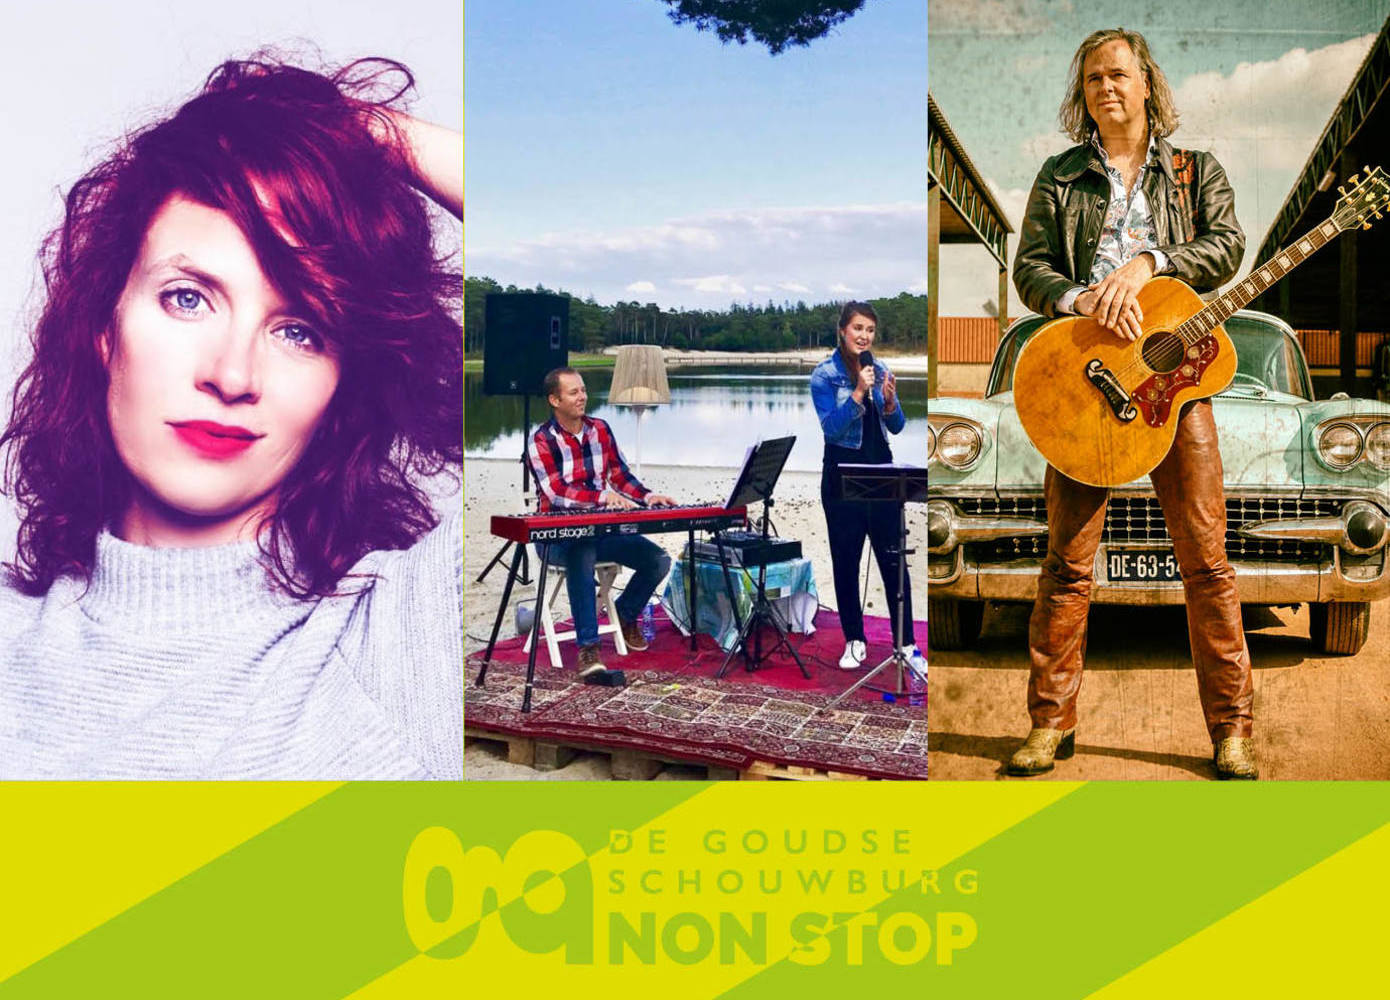 3x30 in concert - Livestreamticket | Margriet Sjoerdsma, Erwin Nyhoff, R&A Music